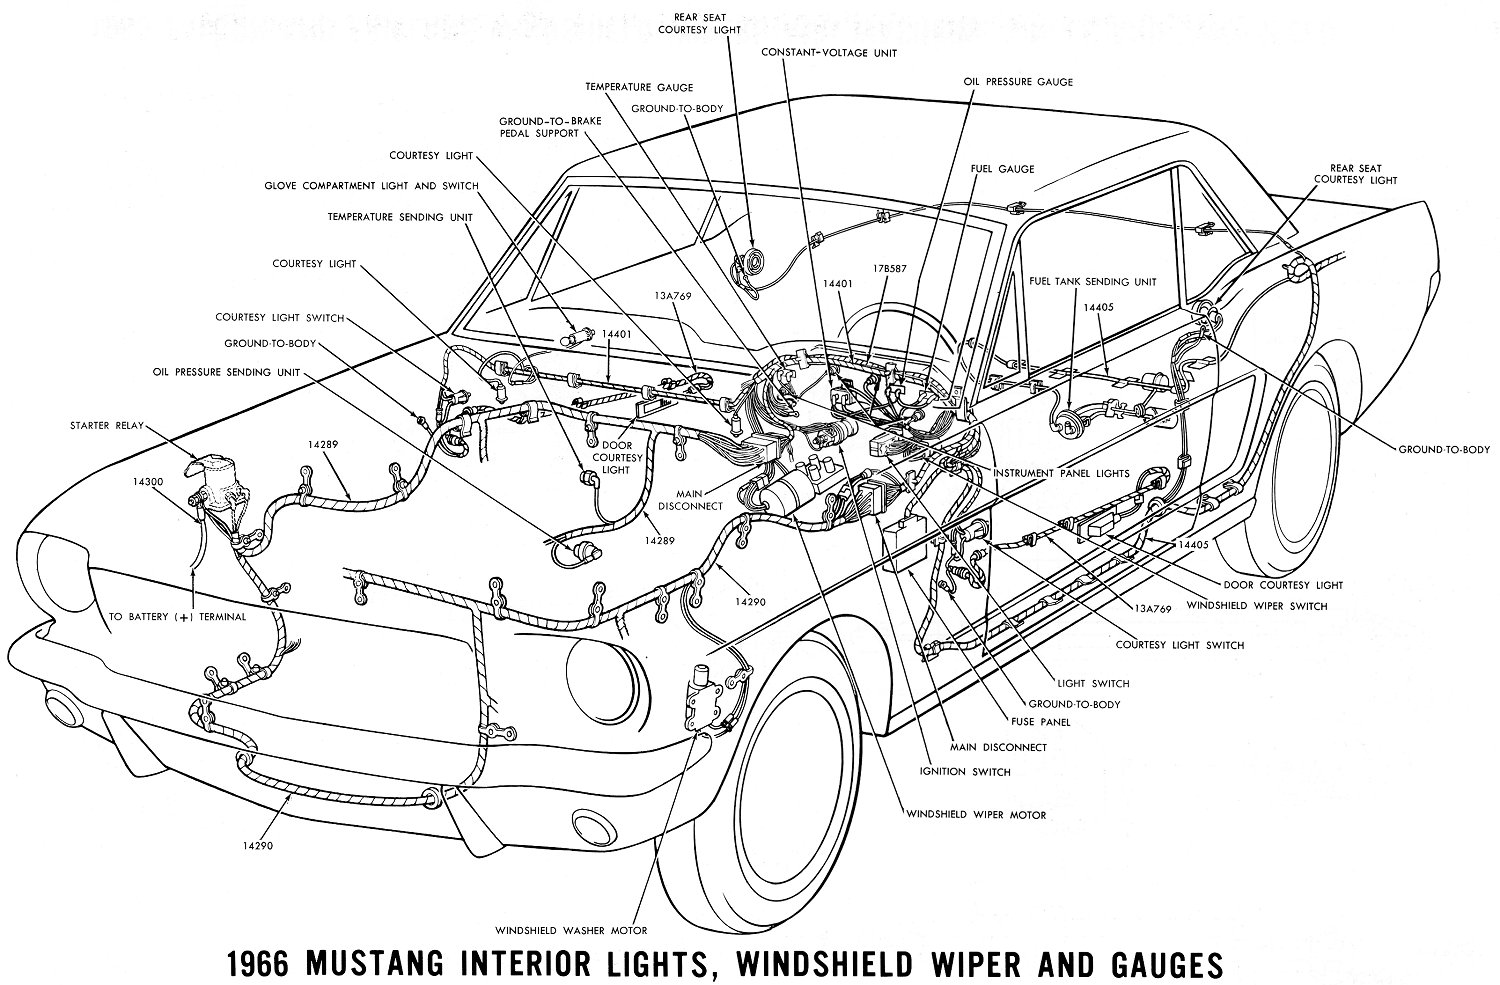 1966 mustang wiring diagrams average joe restoration rh averagejoerestoration com Mustang Wiring Harness Diagram 1966 Mustang Headlight Wiring Diagram